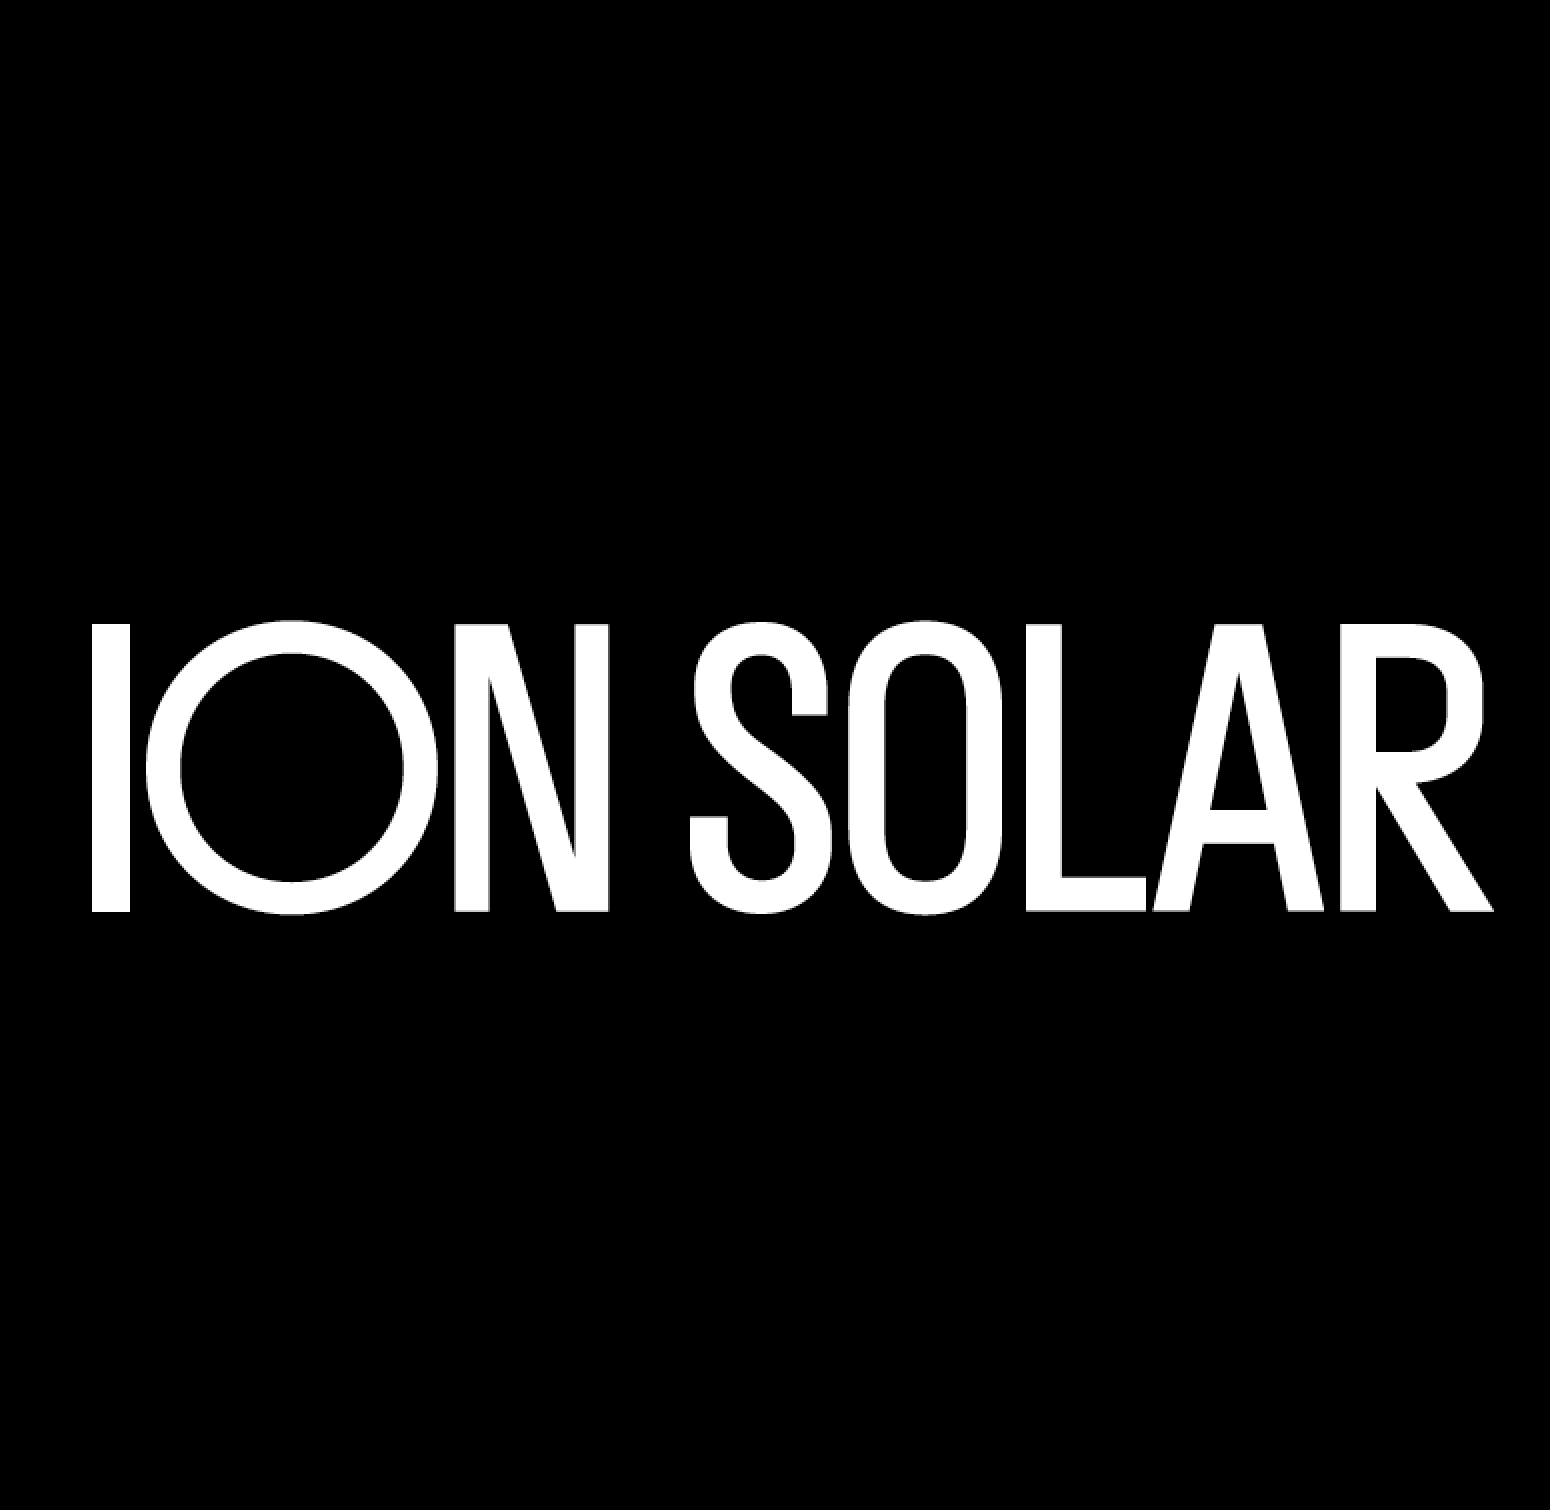 ION Solar Recognized as Top Ten in Residential Solar and One of America's Fastest Growing Companies